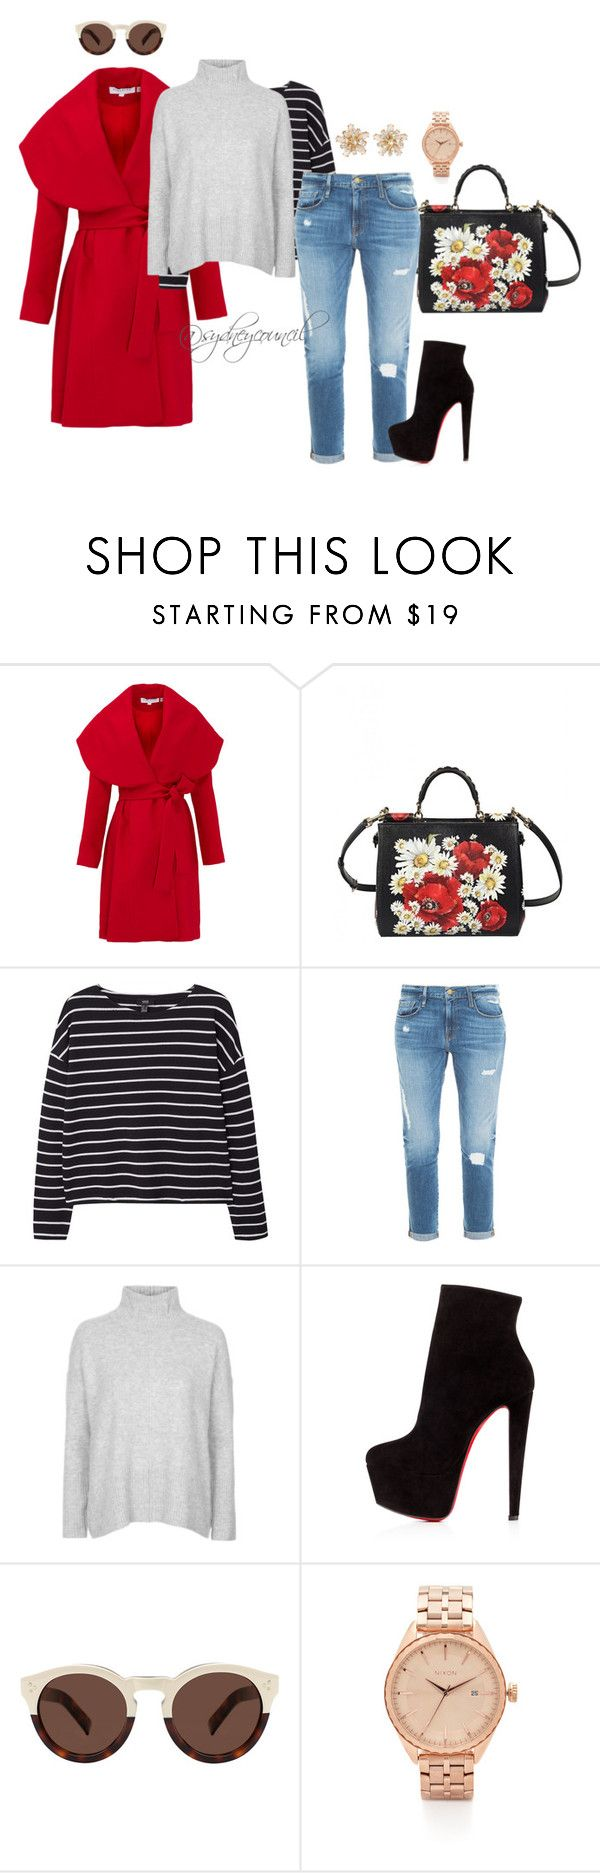 """""""Print and Color"""" by sydneycouncil on Polyvore featuring Keepsake the Label, Dolce&Gabbana, MANGO, Frame Denim, Topshop, Christian Louboutin, Illesteva, Nixon, women's clothing and women"""